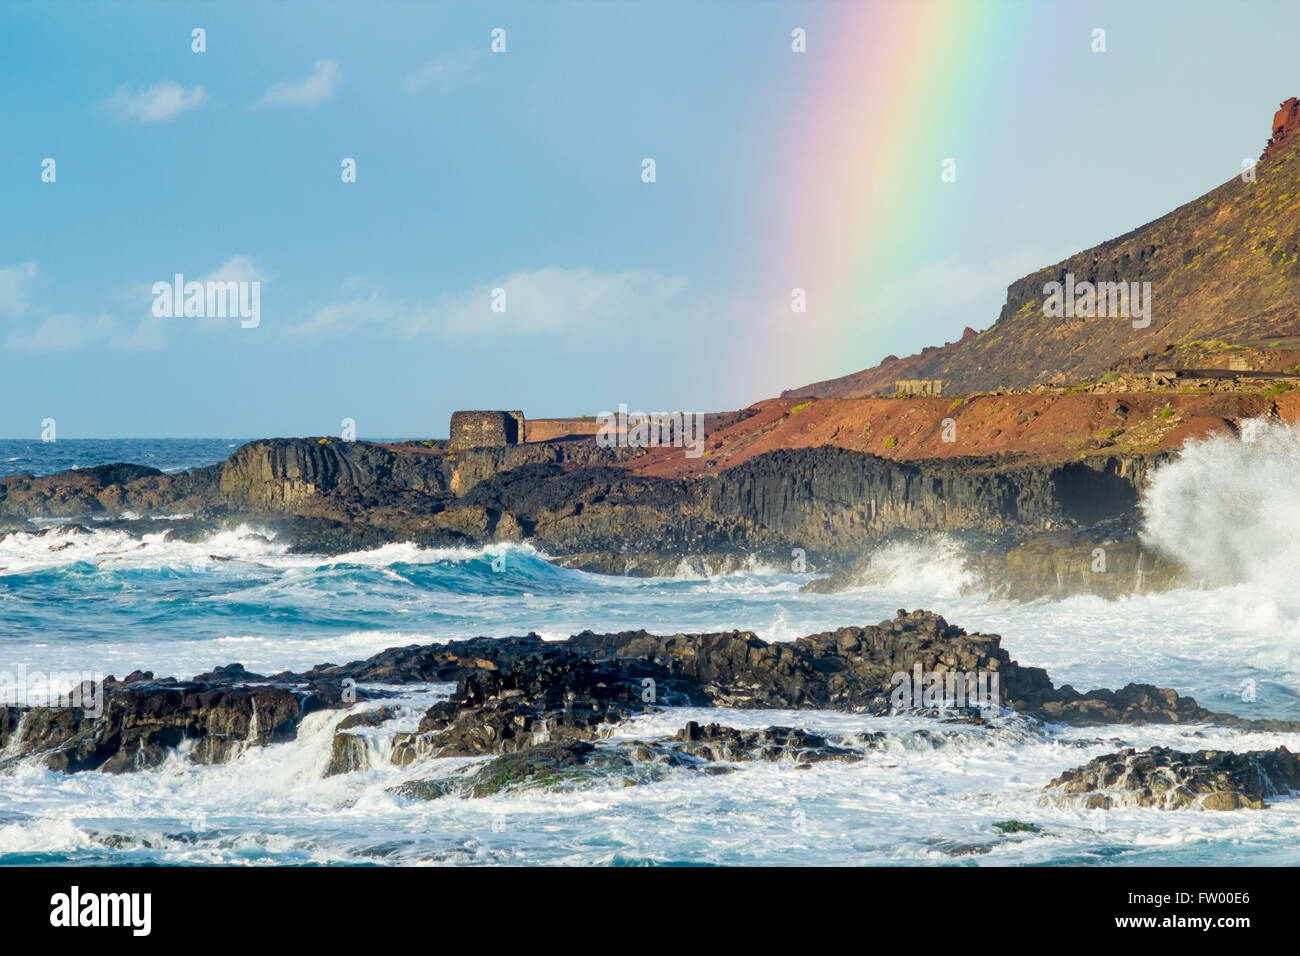 Las Palmas, Gran Canaria, Canary Islands, Spain, 30th March 2016. Weather: Warnings have been issued for heavy rain - Stock Image